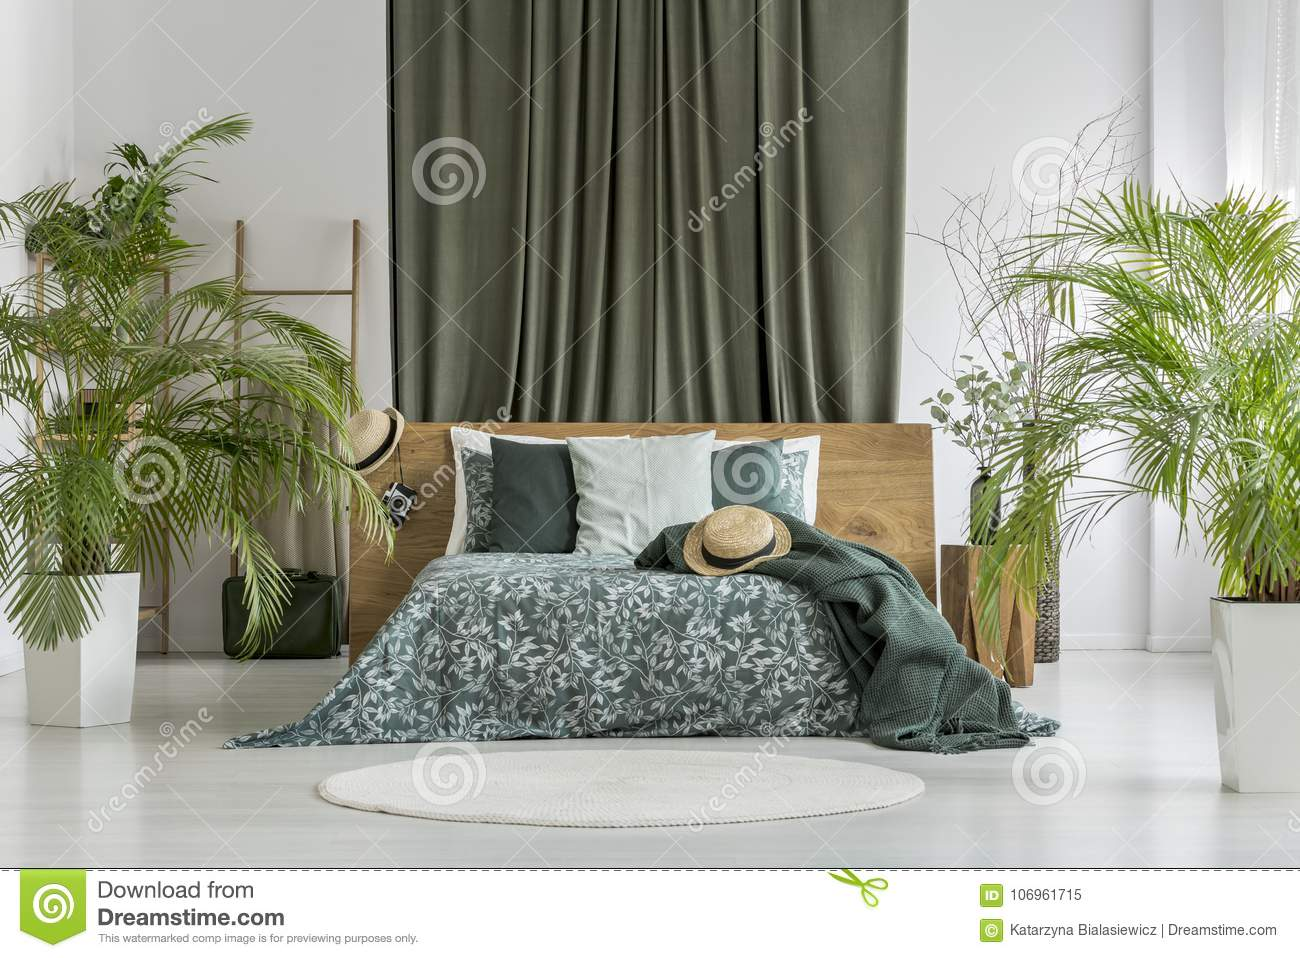 https://thumbs.dreamstime.com/z/piante-camera-da-letto-verde-oliva-106961715.jpg